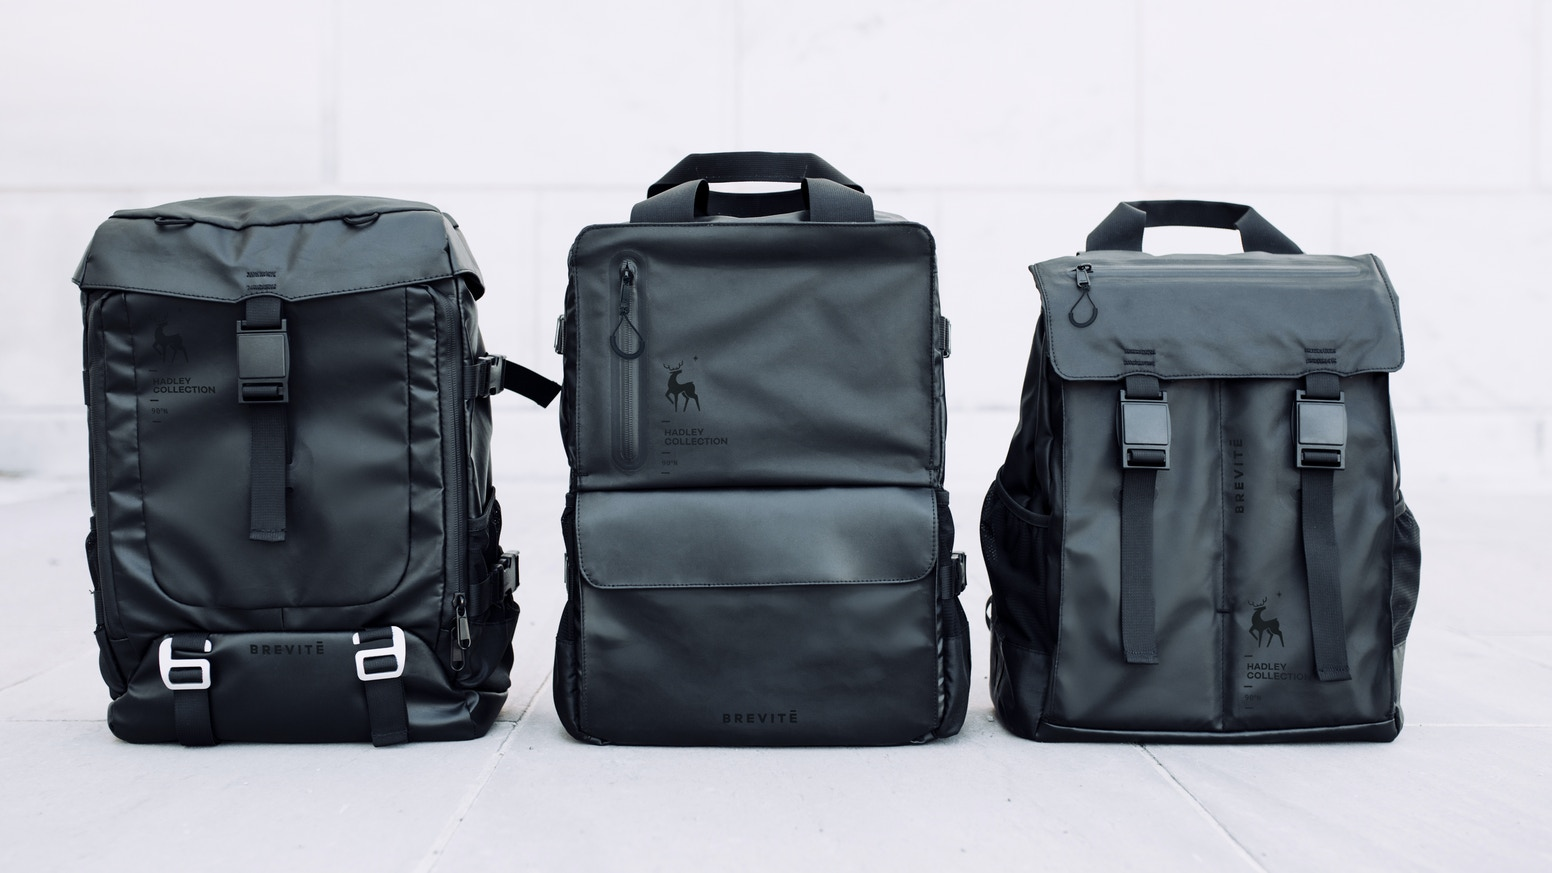 b0853319a5cb1b Brevitē: The Ultimate Travel and Commuter Backpack by Brandon Kim —  Kickstarter